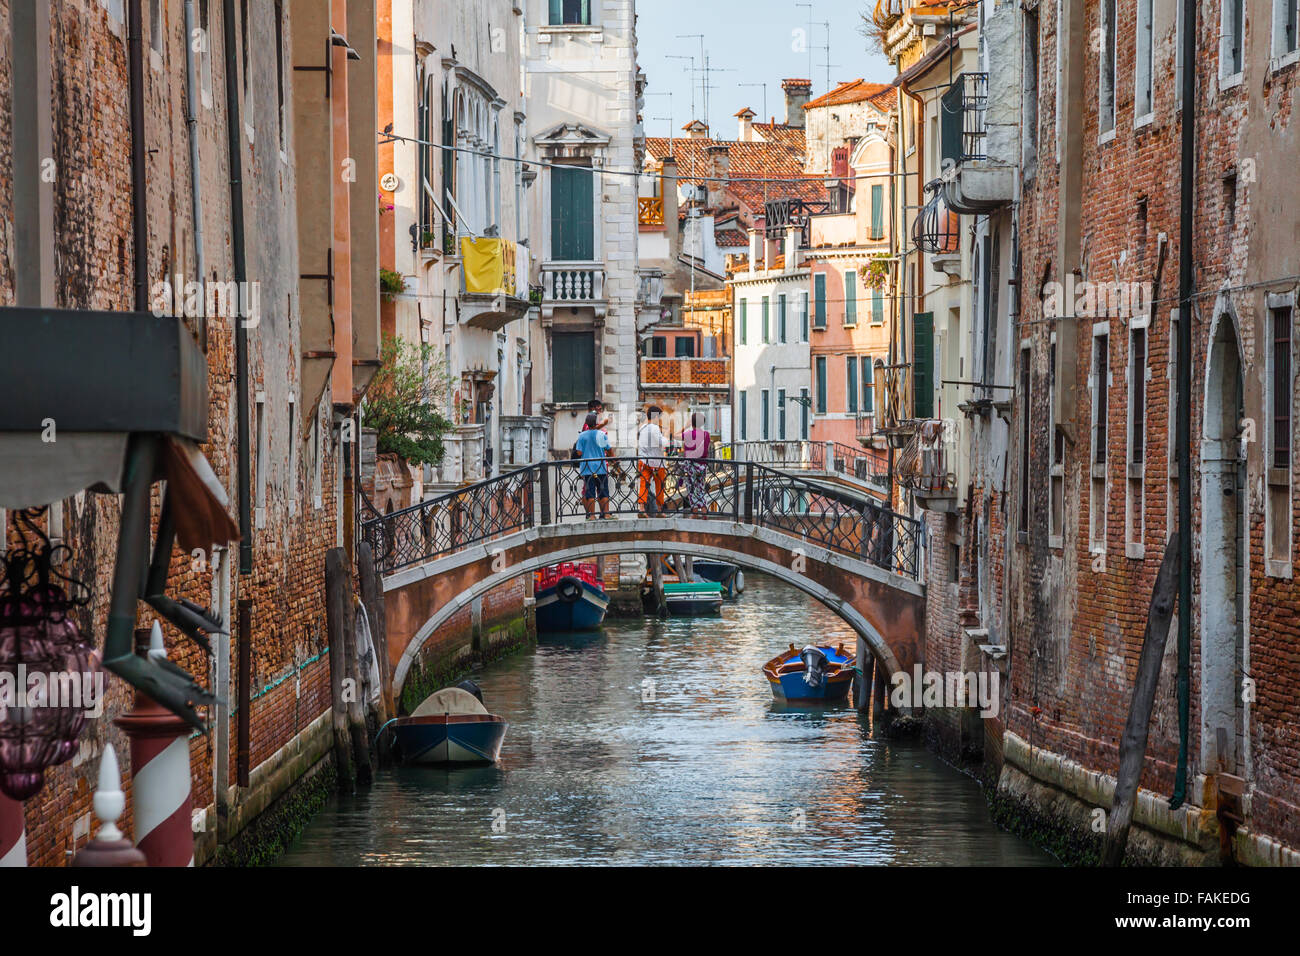 Venetian buildings and boats along Canal Grande, Venice, italy - Stock Image